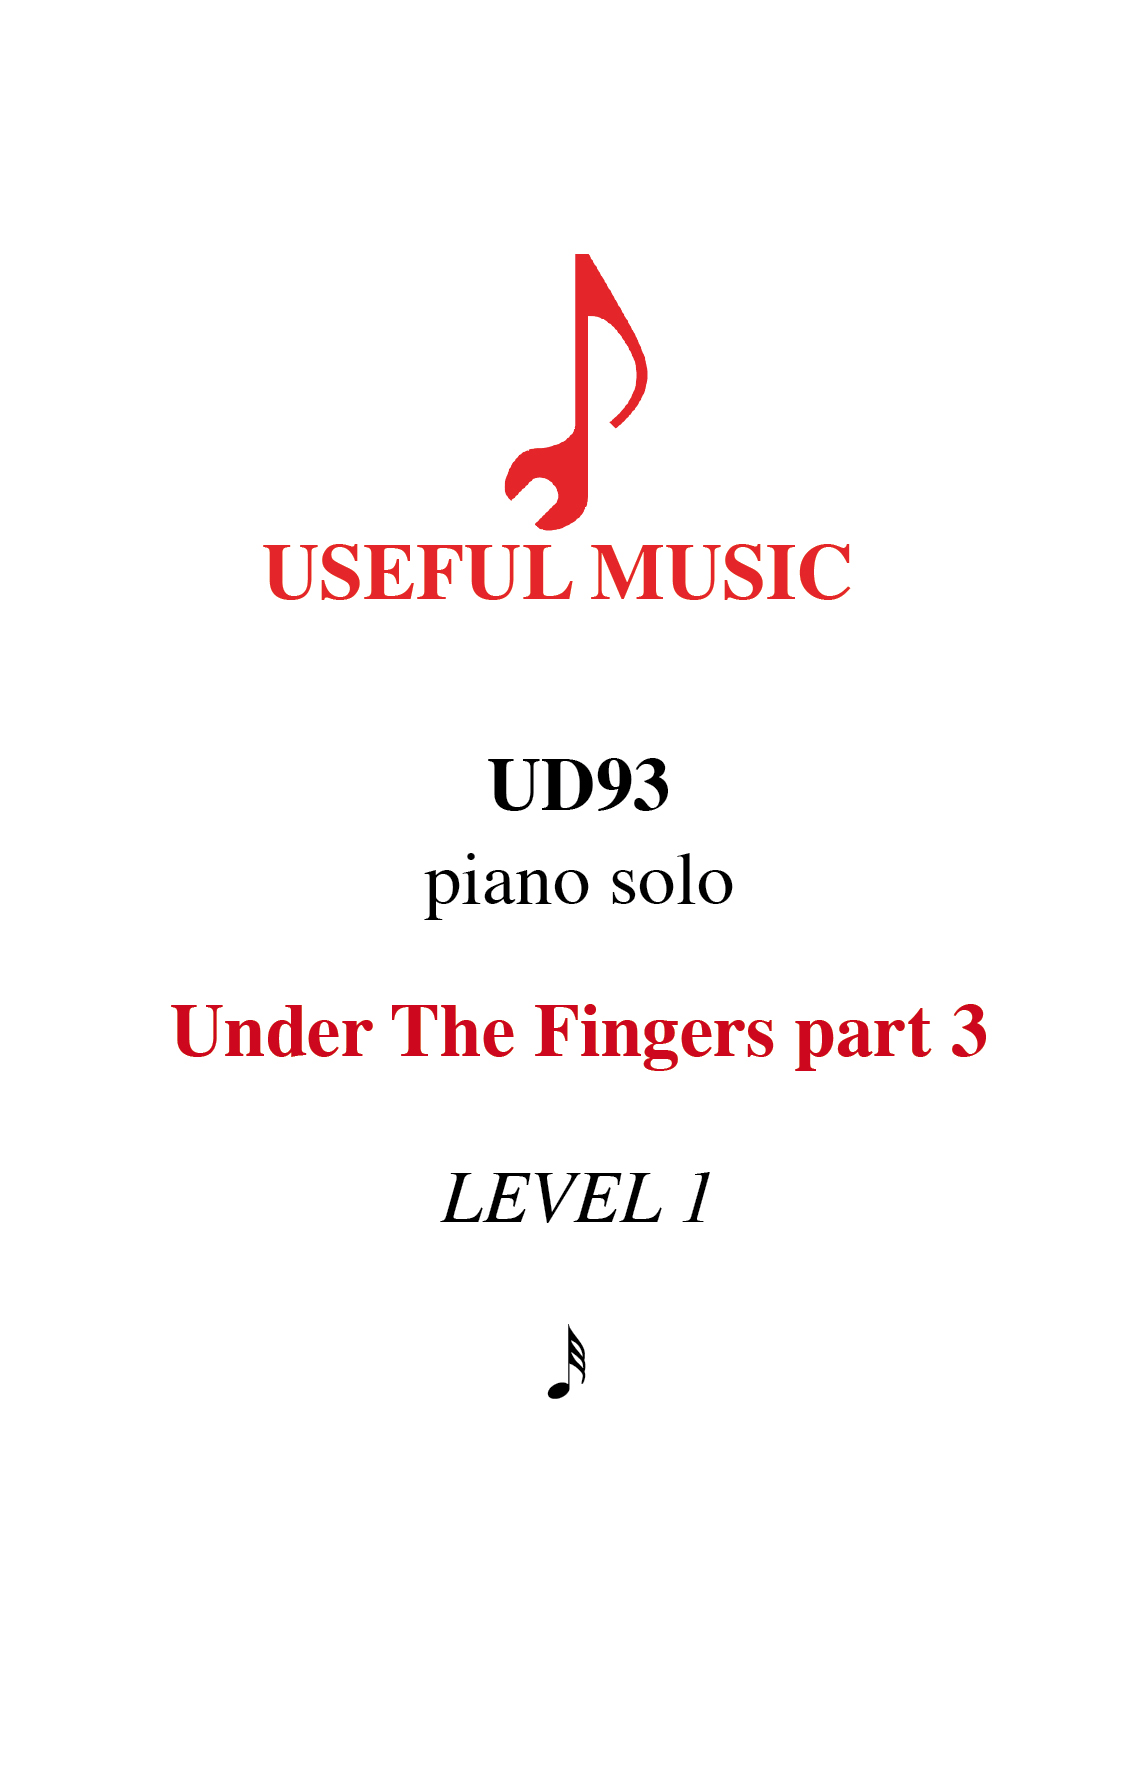 Under the Fingers part 3